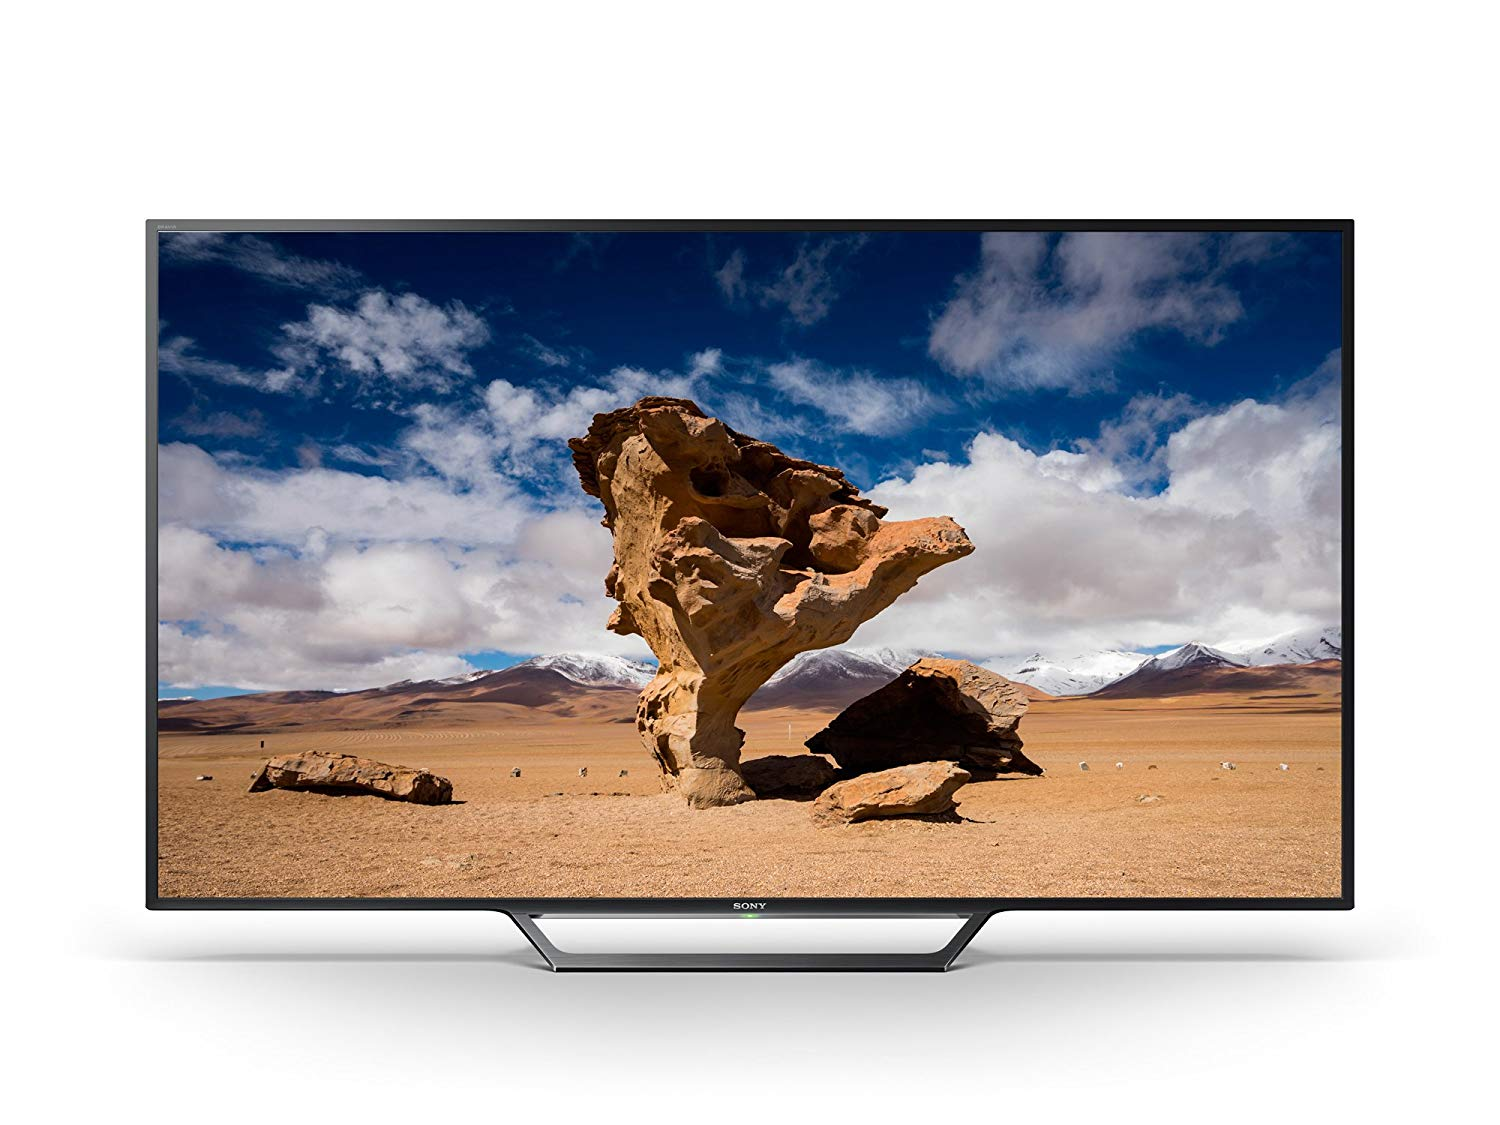 Sony 48W650D 48 Inch 1080p Smart TV review